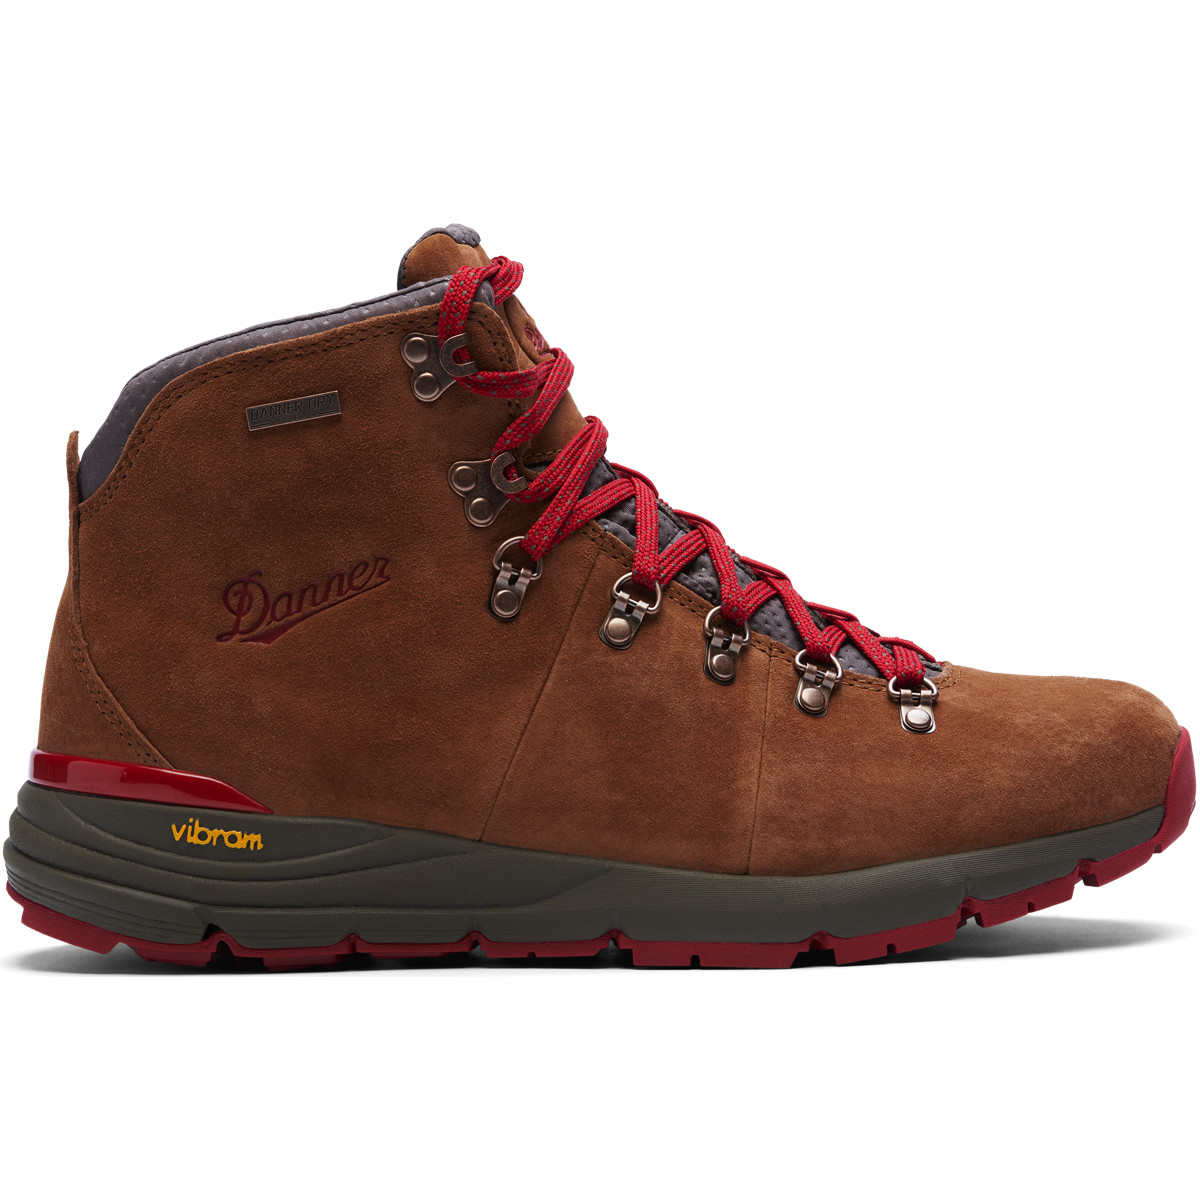 Danner - Women's Mountain 600 4.5